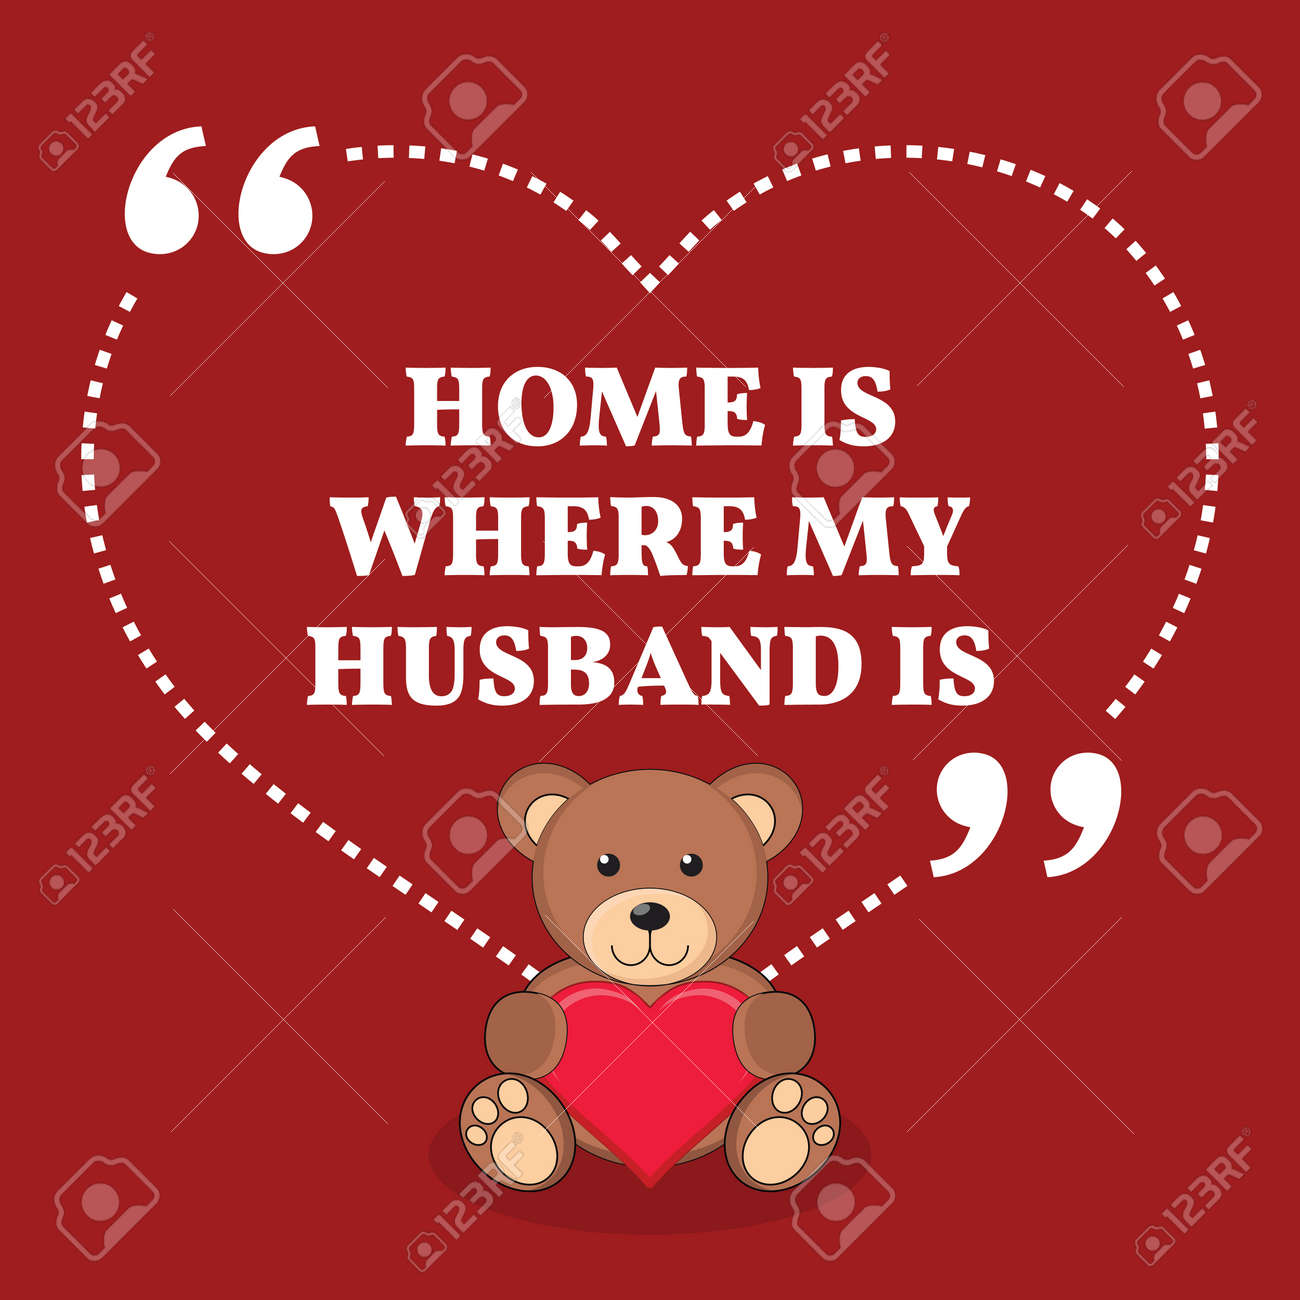 Inspirational love marriage quote Home is where my husband is Simple trendy design